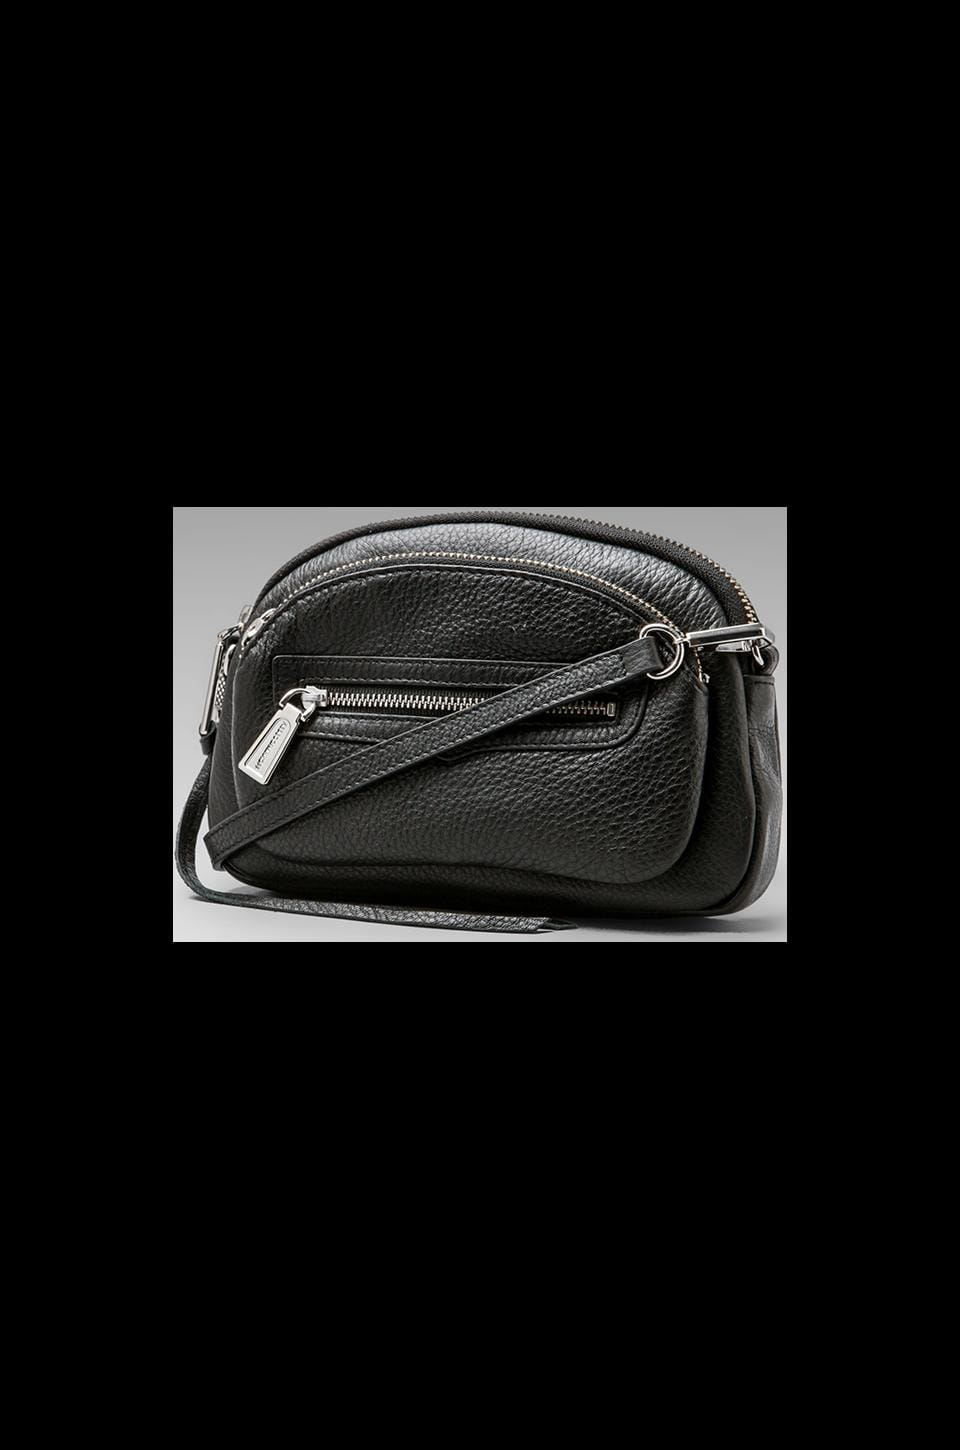 Rebecca Minkoff Jelly Bean in Black